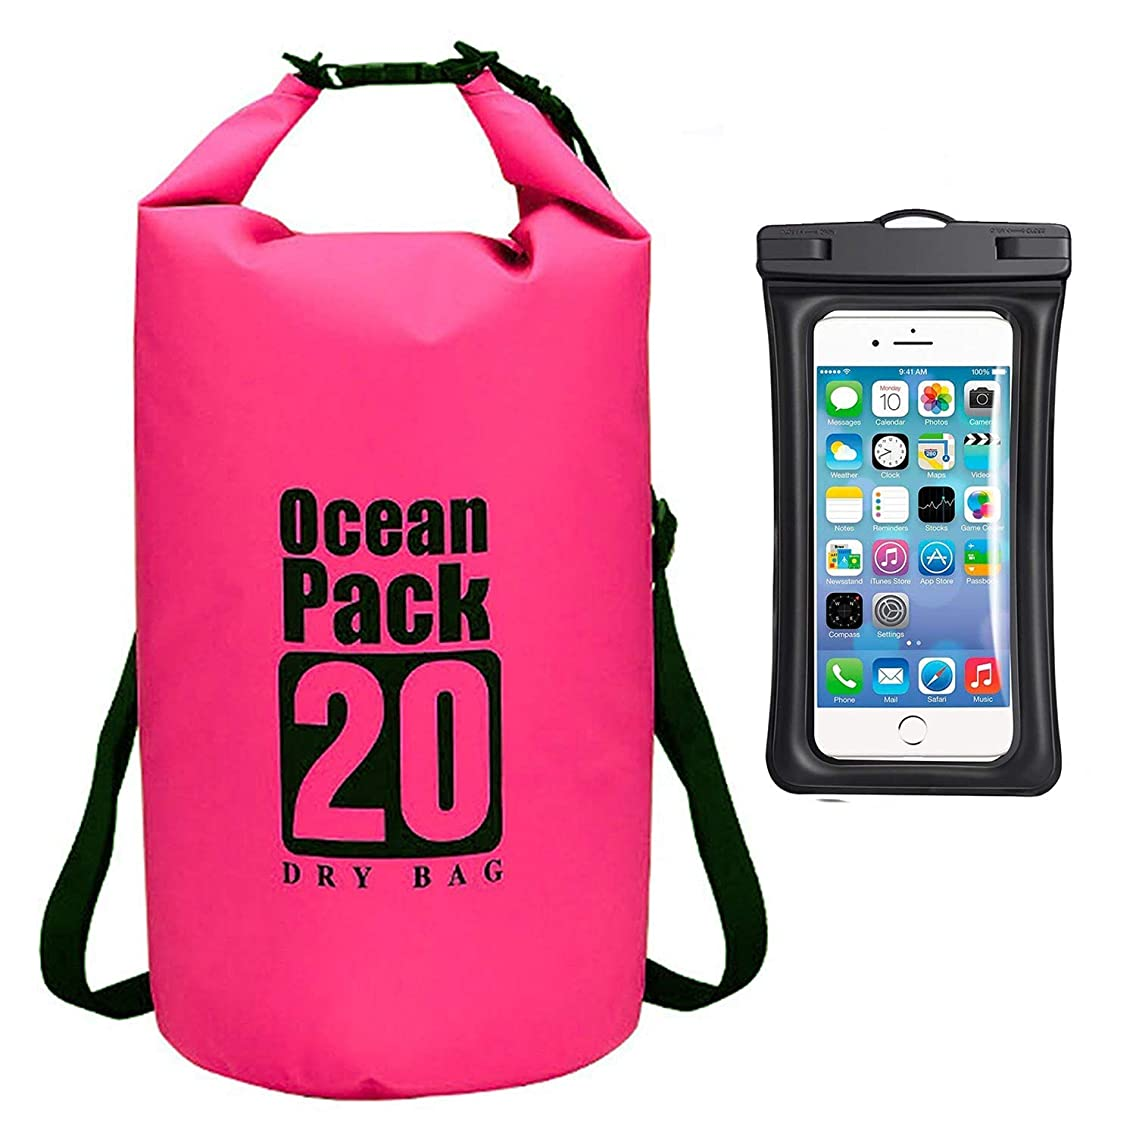 HAMISS Heavy Duty PVC Water Proof Dry Bag Sack Backpack for Camping Fishing Boating Kayaking Swimming Rafting Ocean Resistant 2L/3L/5L/10L/15L/20L/30L (20L, Pink)